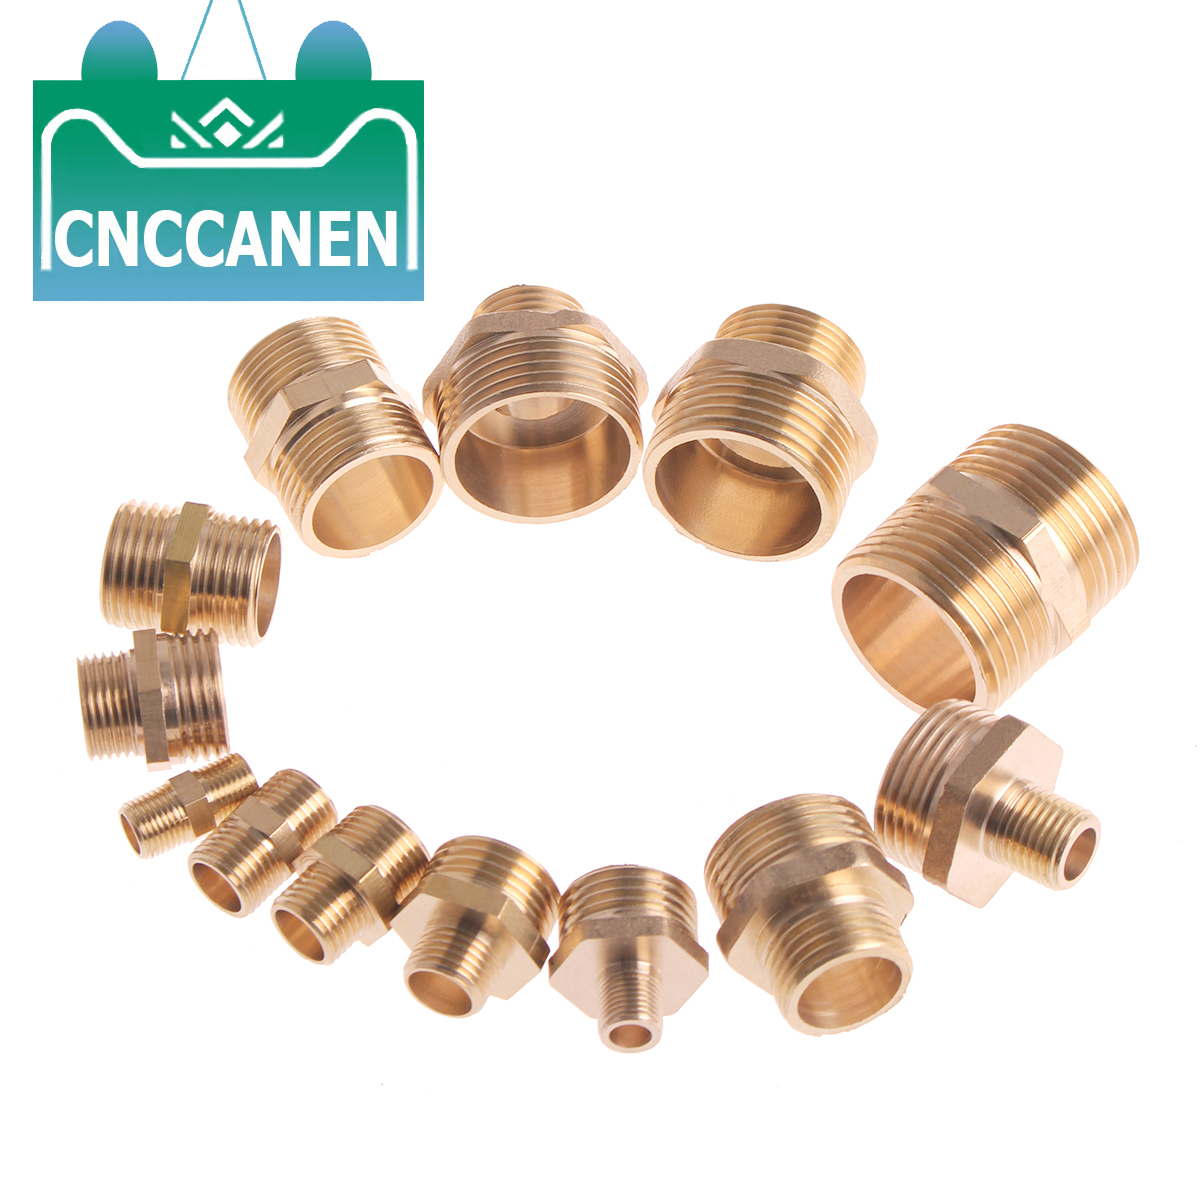 Brass <font><b>Pipe</b></font> Hex Nipple Fitting Coupler Connector Quick Adapter 1/8